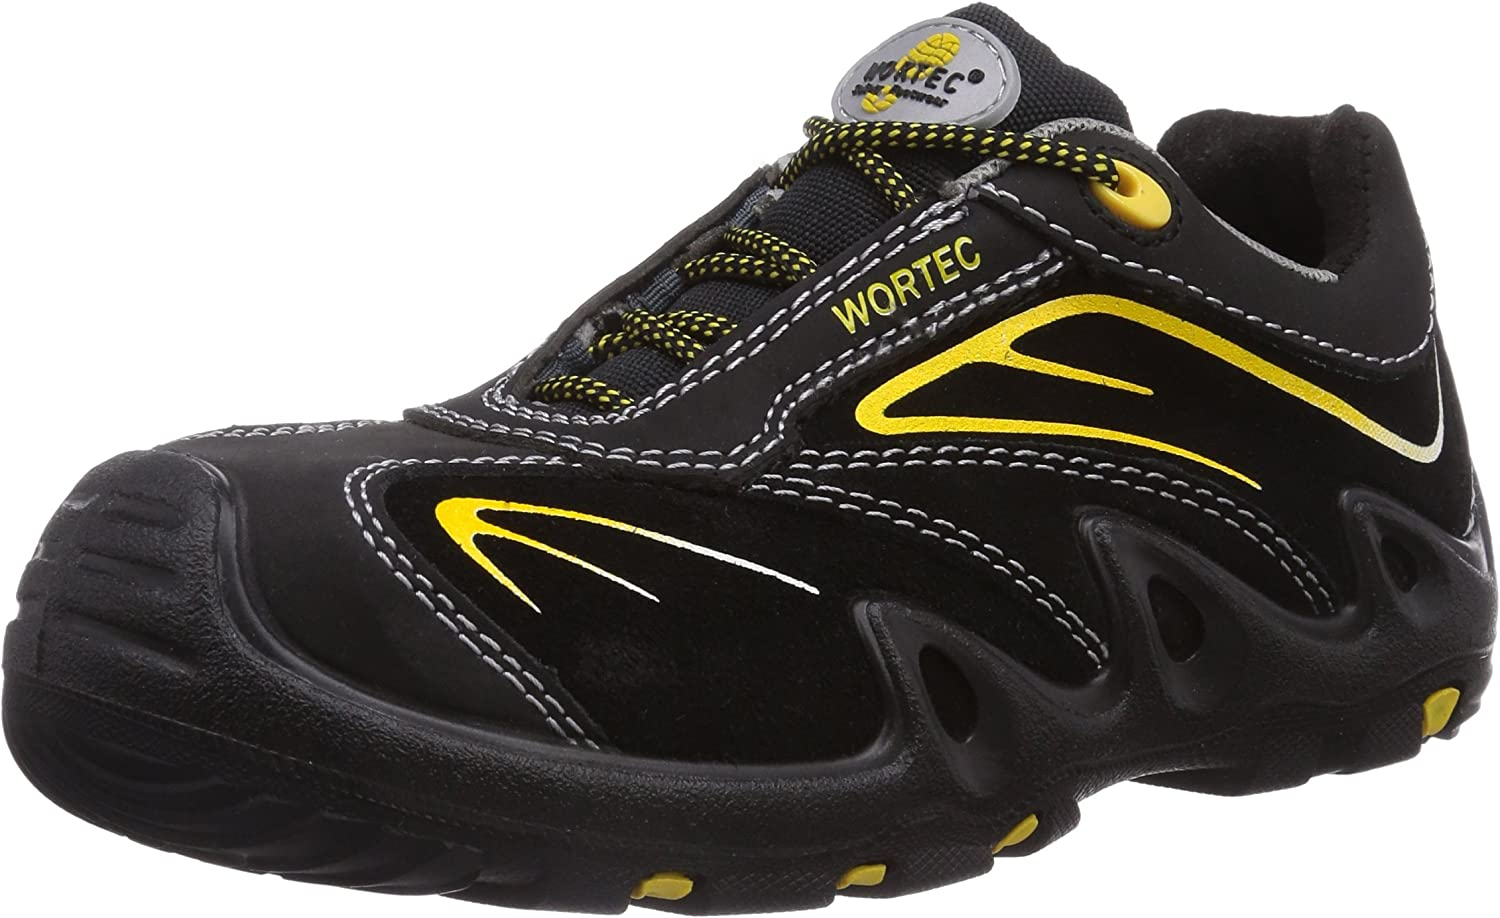 Wortec Unisex Adults' Harrison Low S3 Safety Trainers